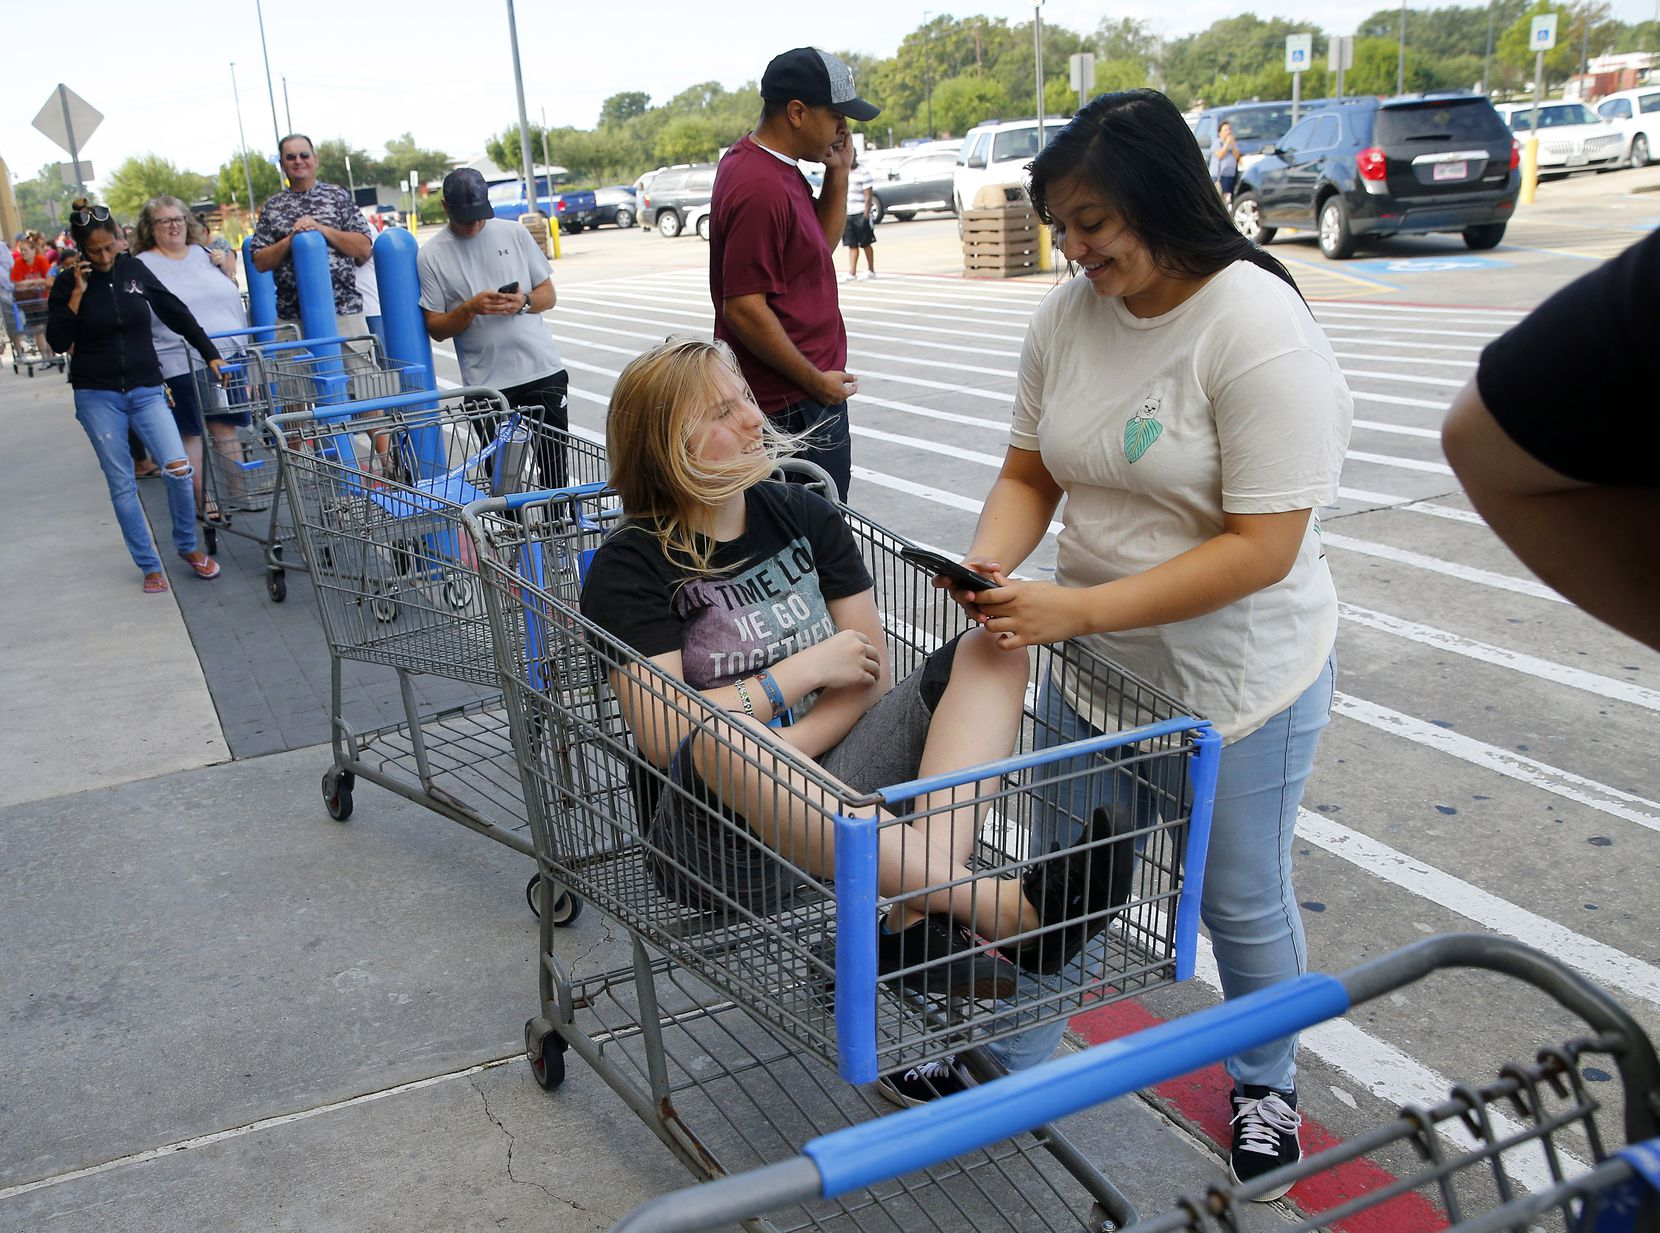 Jessica Puffen, 16, waited in a shopping cart along with her friend Emily Gomez, 17,  in a long line at  the Walmart on Hwy. 35 in Pearland, Texas.